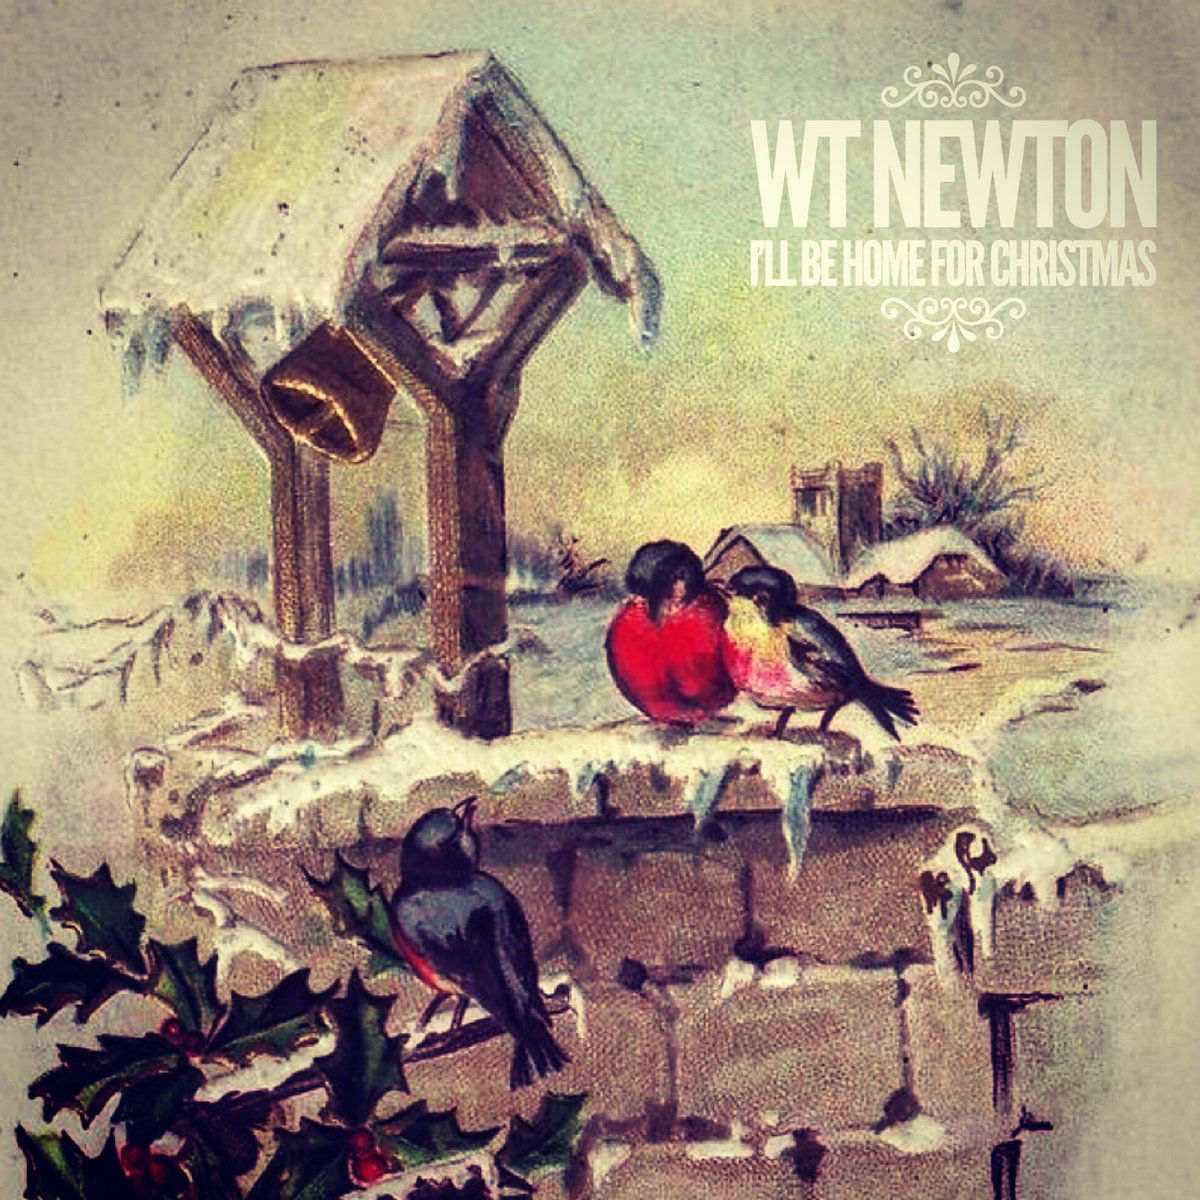 ill be home for christmas by wt newton - Who Wrote I Ll Be Home For Christmas